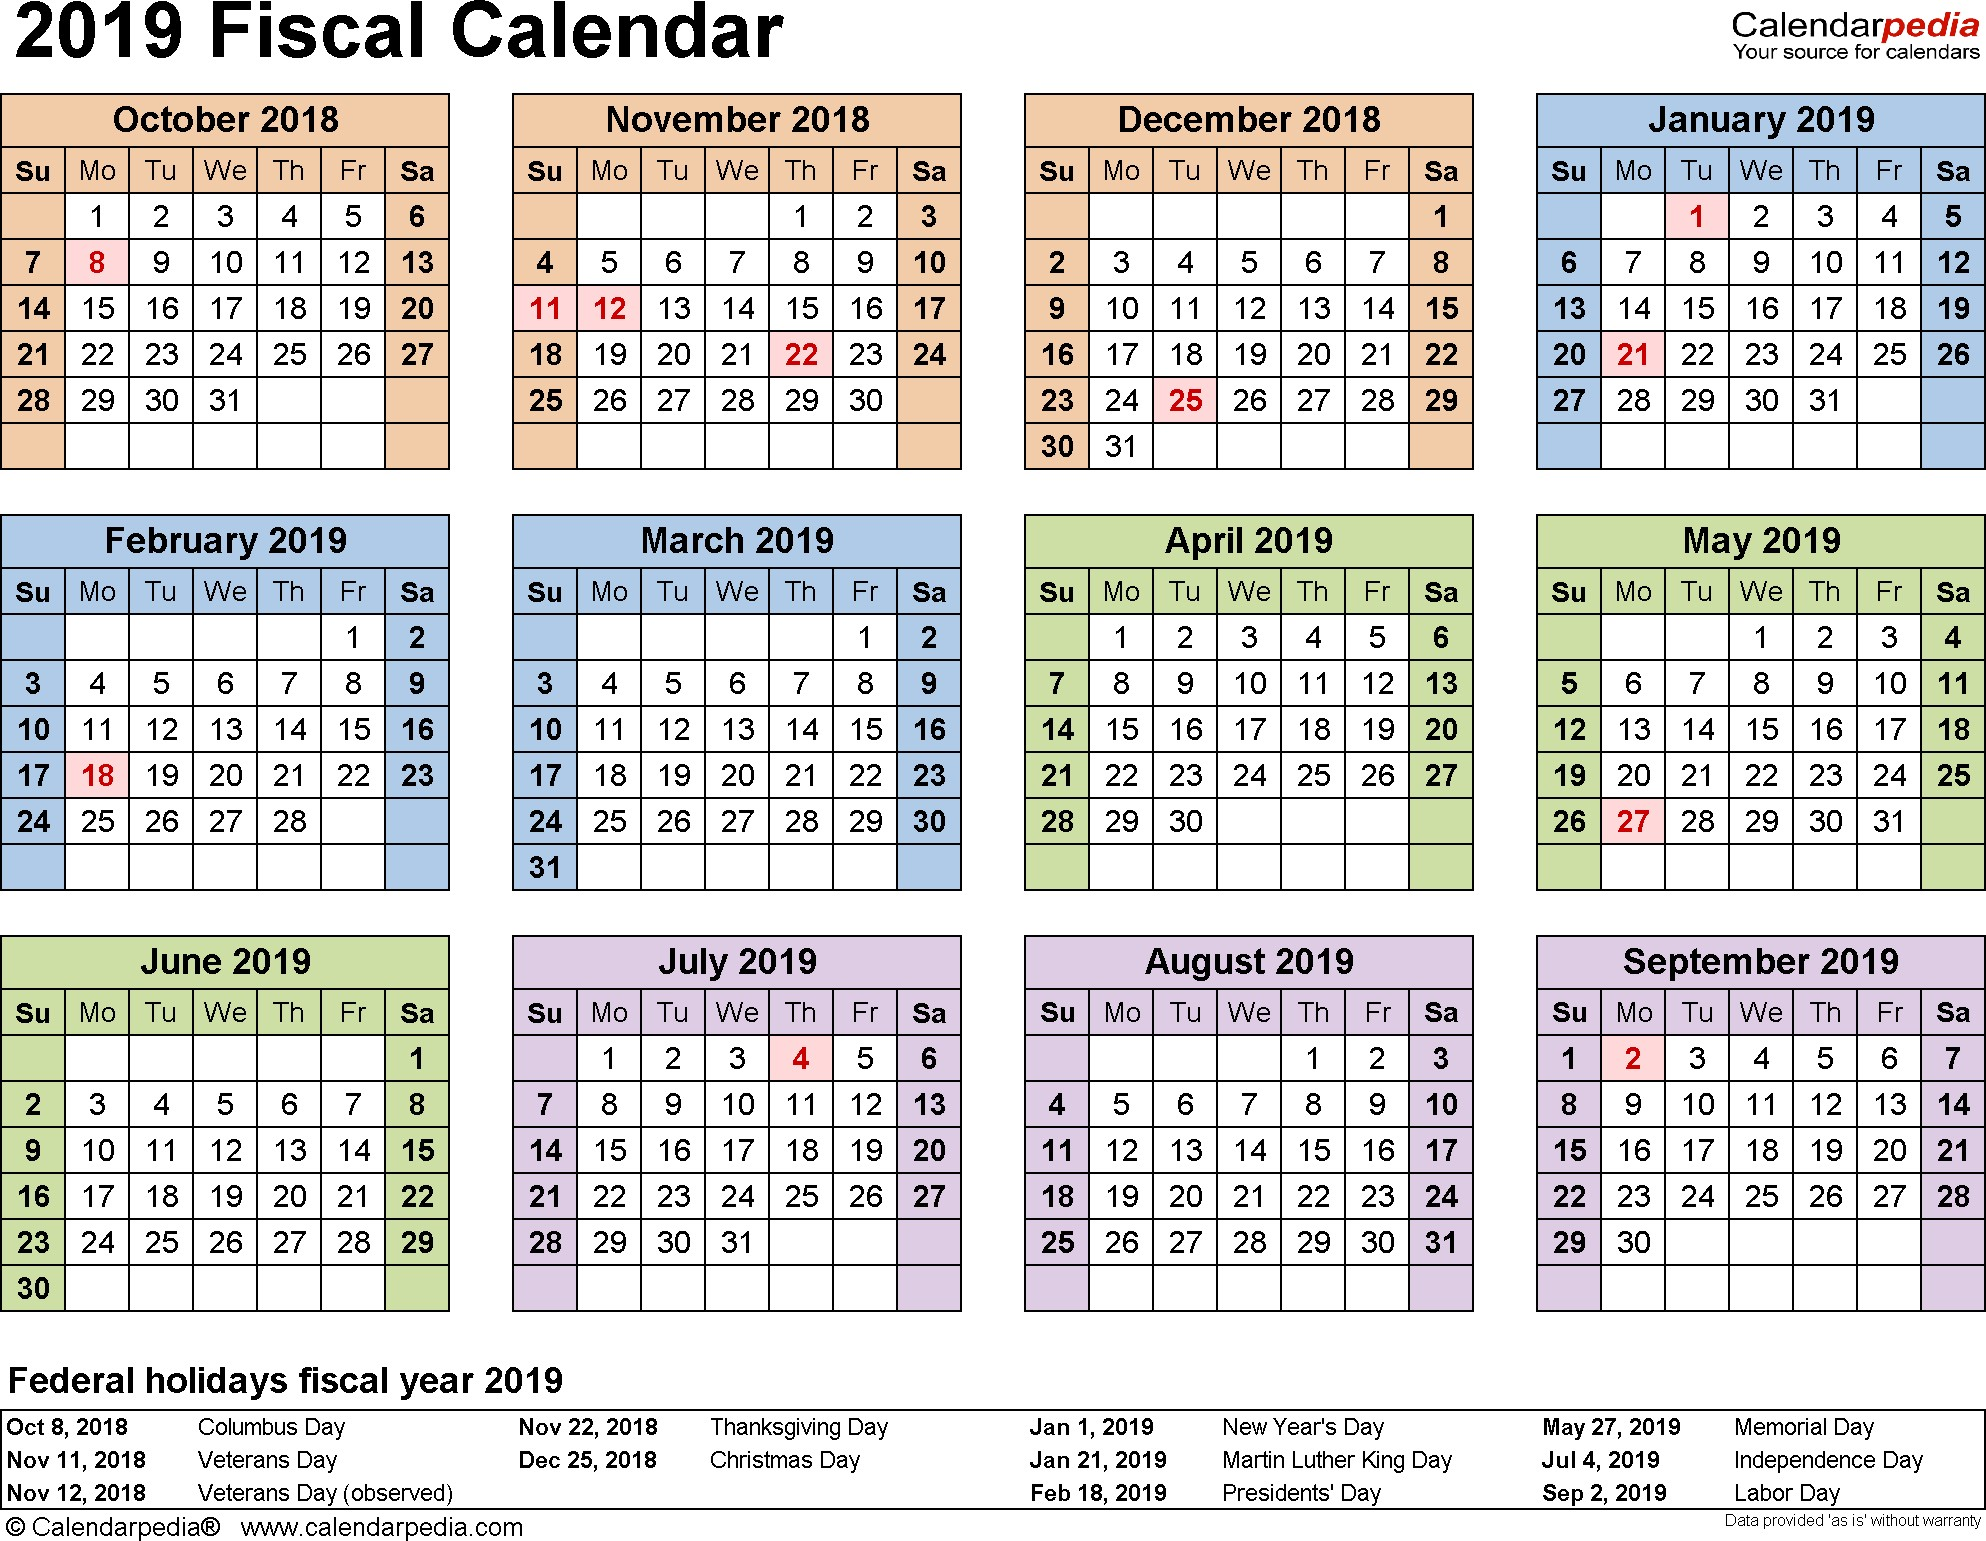 Calendar January to March 2019 Más Caliente Fiscal Calendars 2019 as Free Printable Word Templates Of Calendar January to March 2019 Más Recientes Petersburg Library